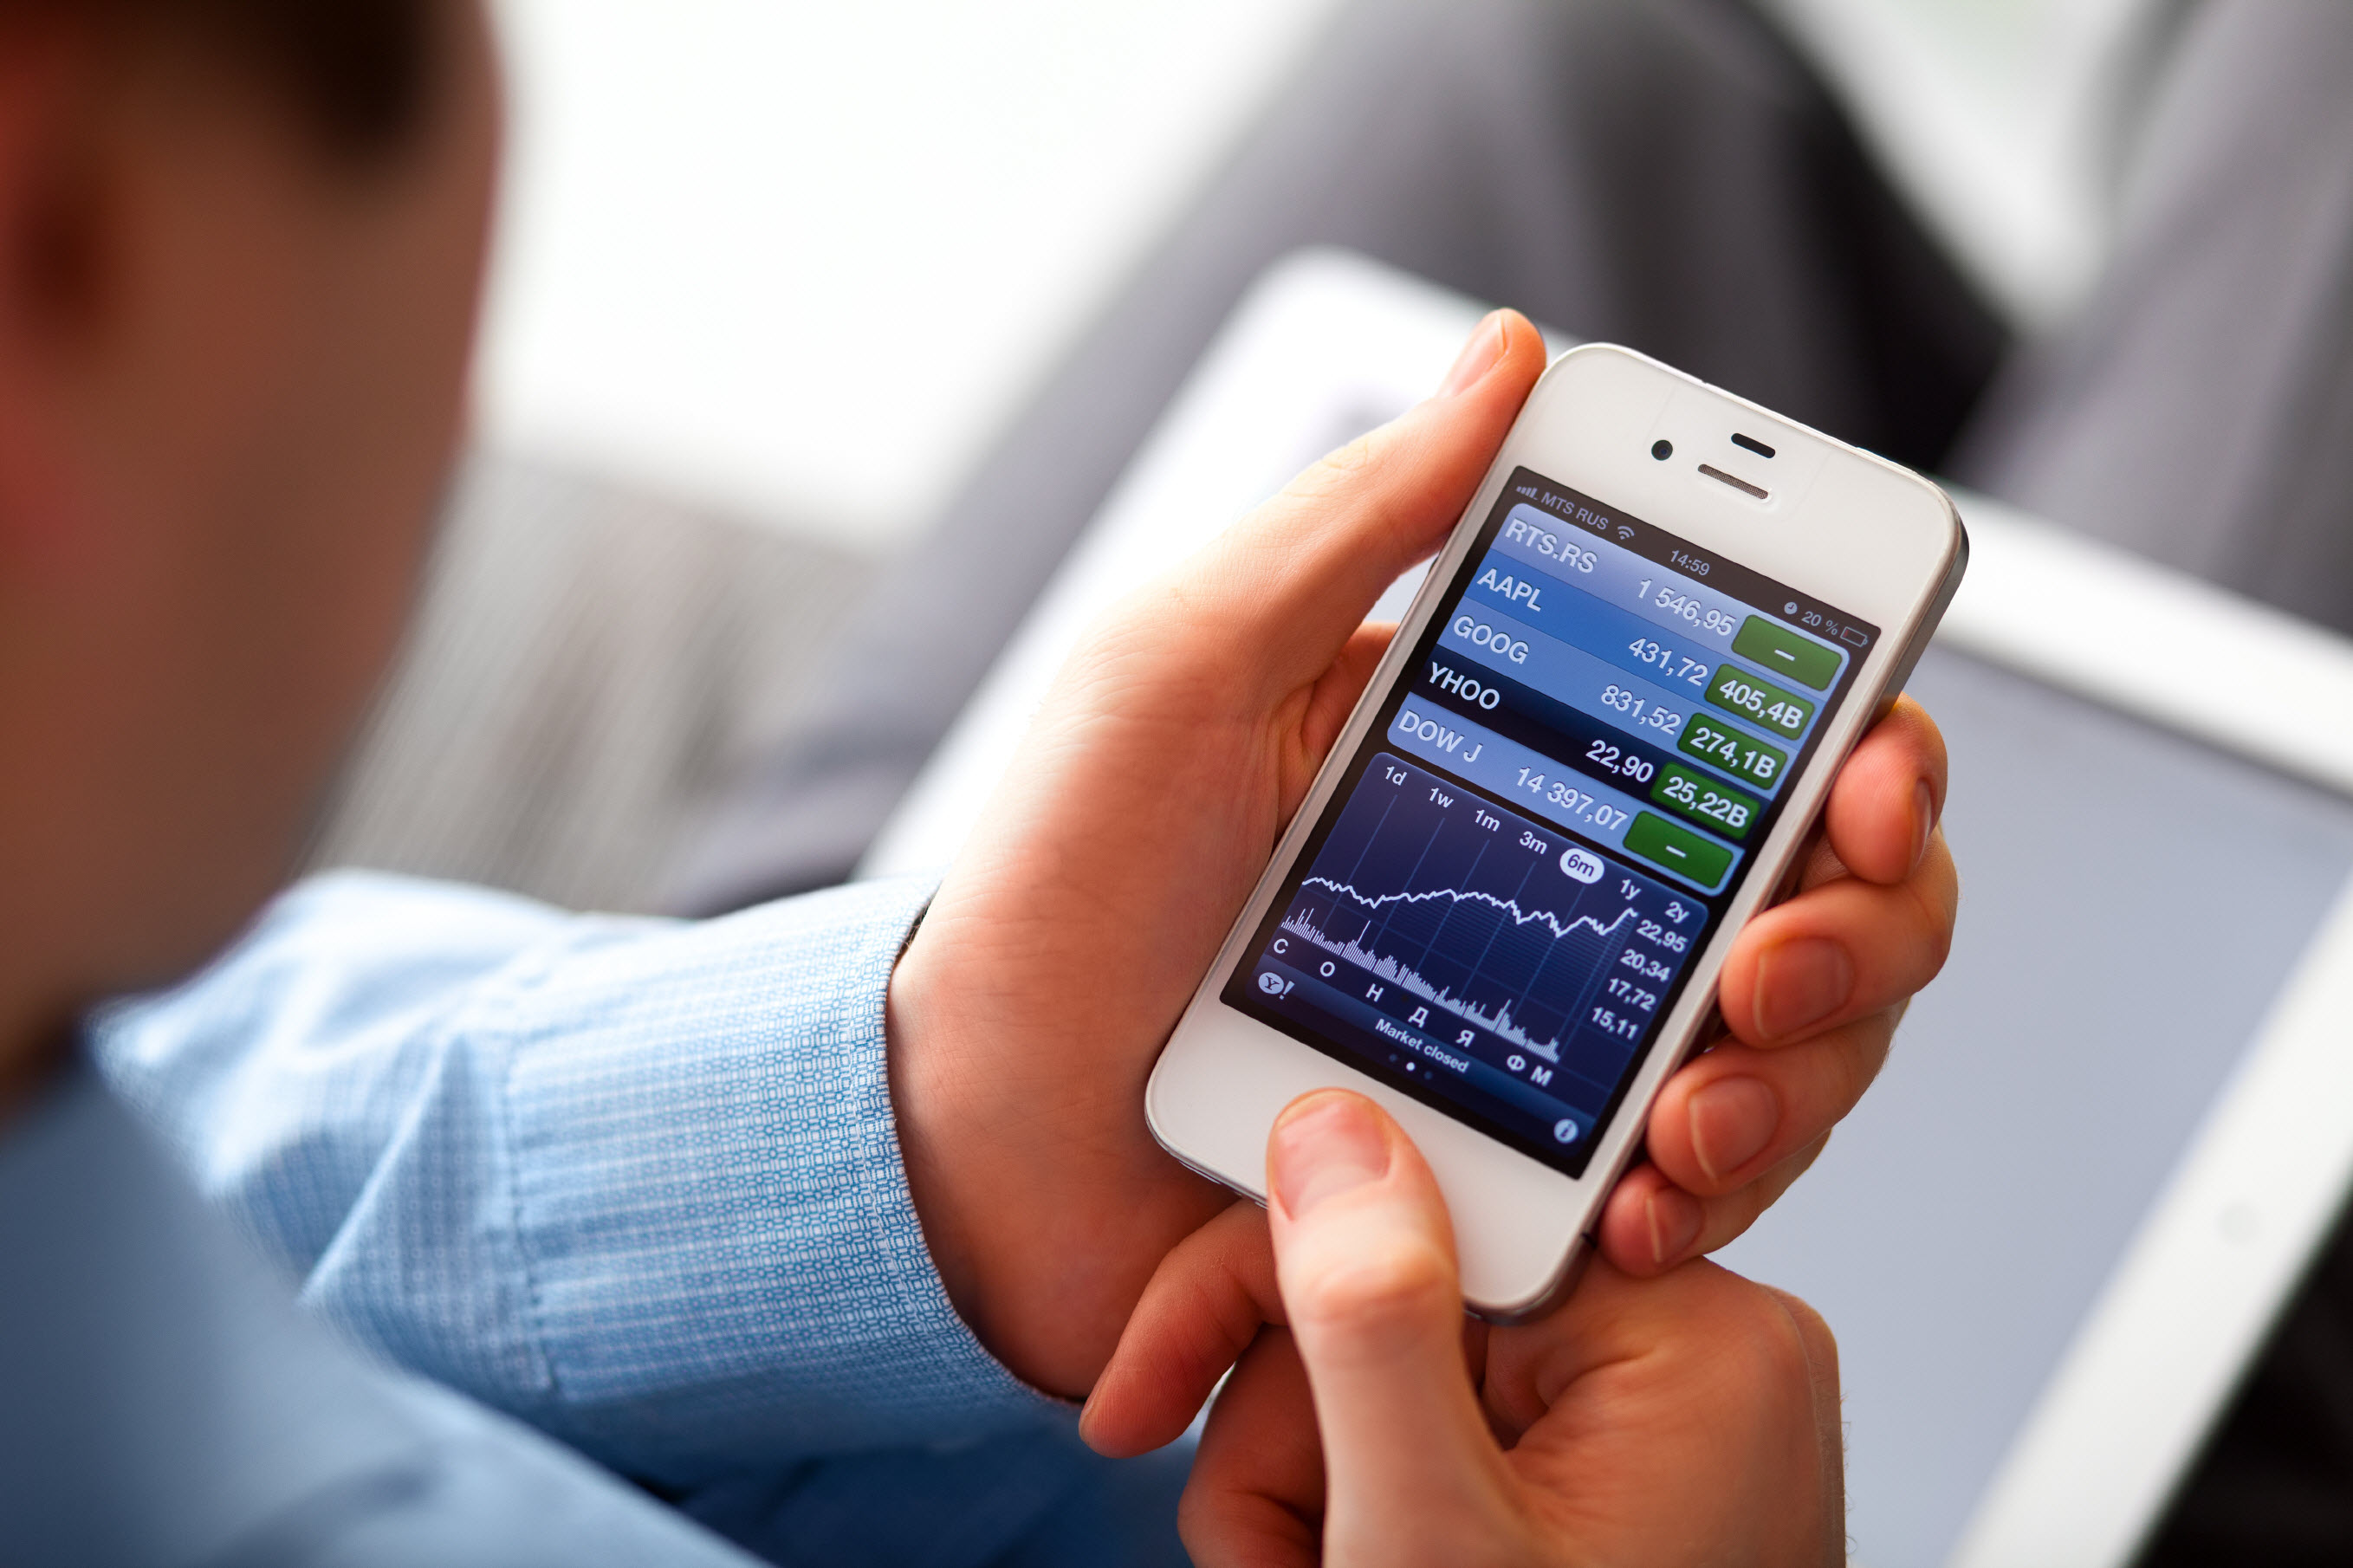 Aussie investment traders embrace mobile technology